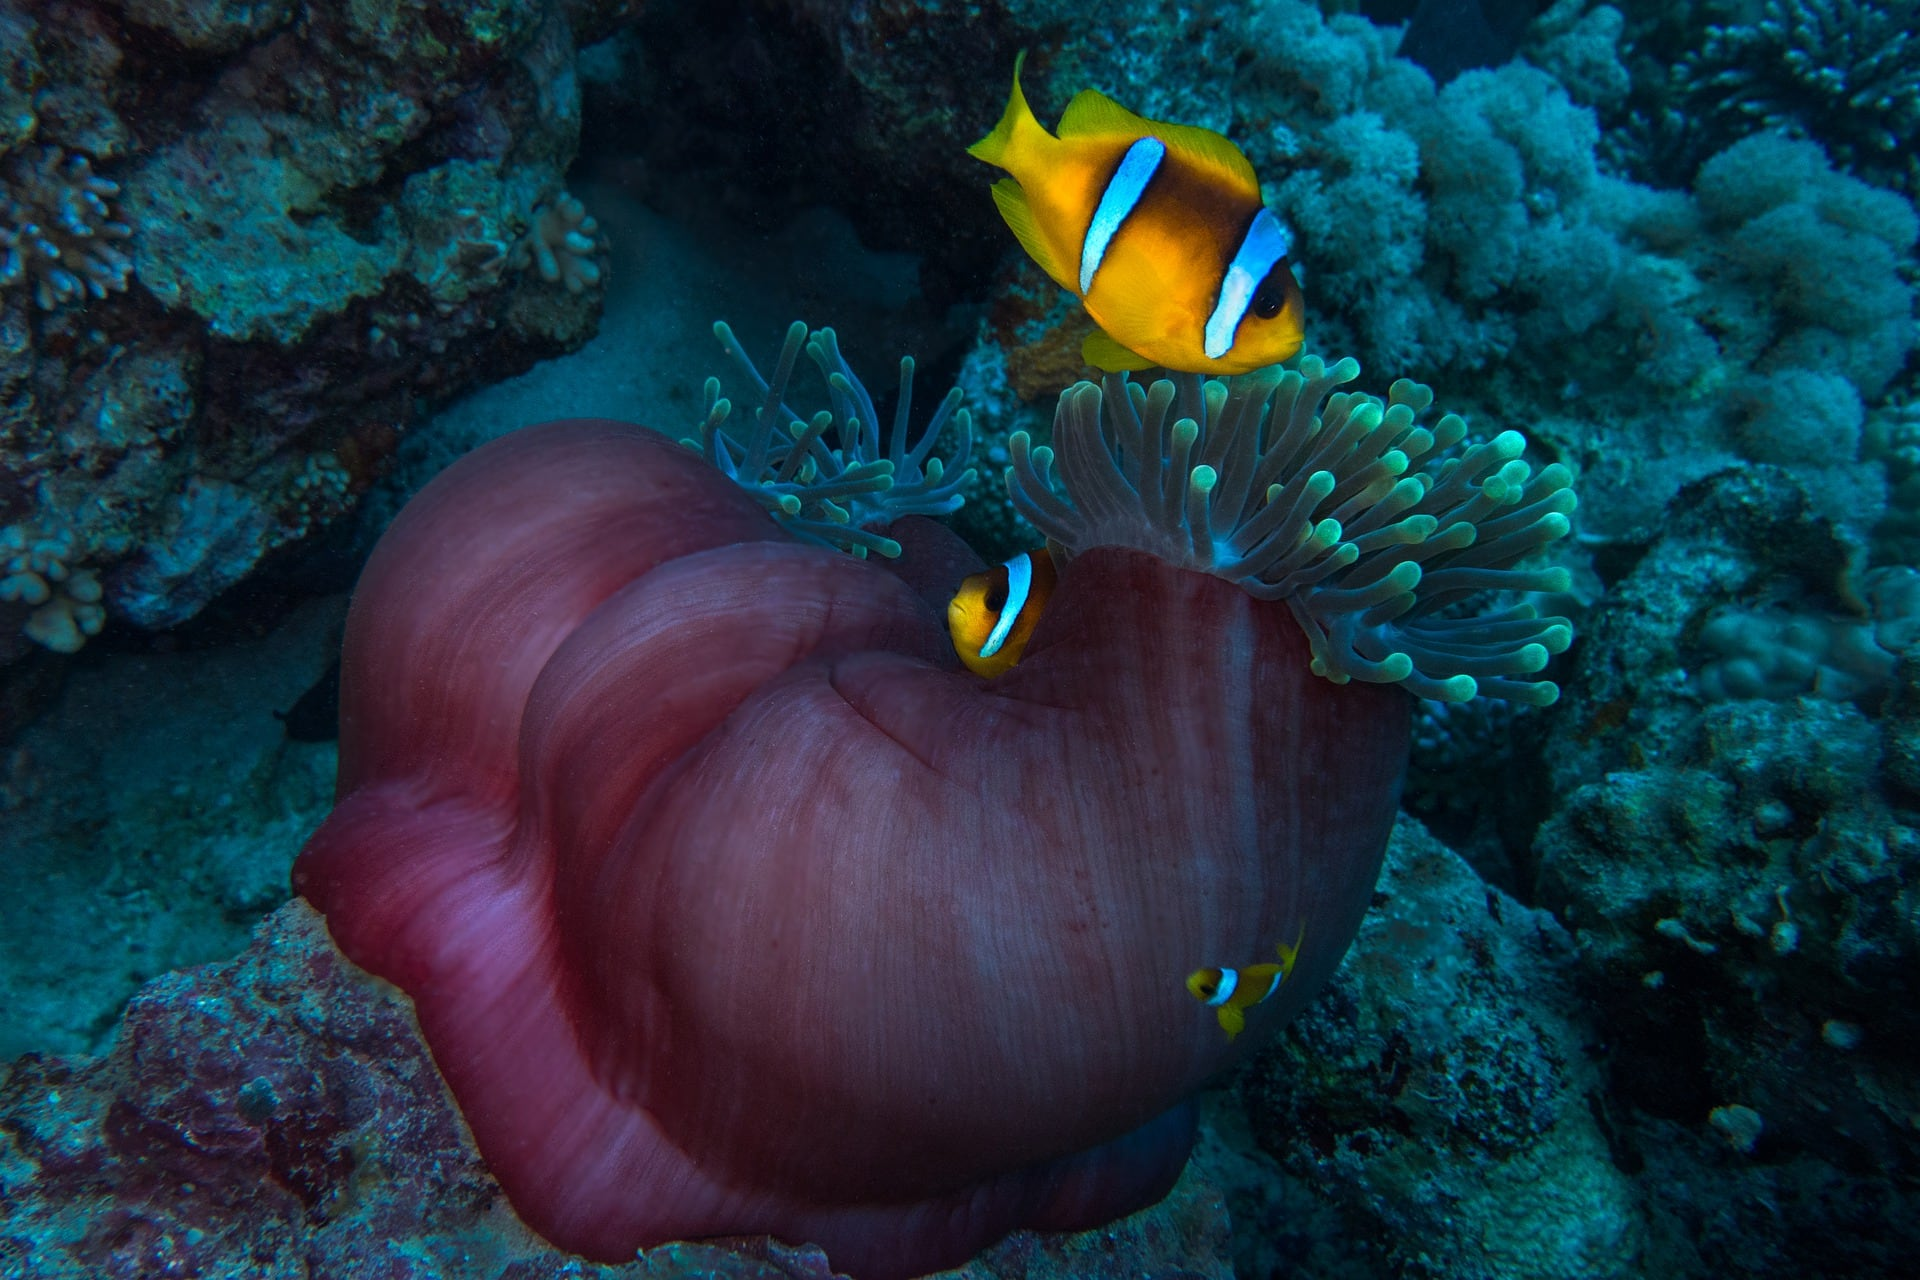 //d1y4y2hb9hjzna.cloudfront.net/sites/default/files/revslider/image/clown-anemonefish-4227162_1920_0.jpg